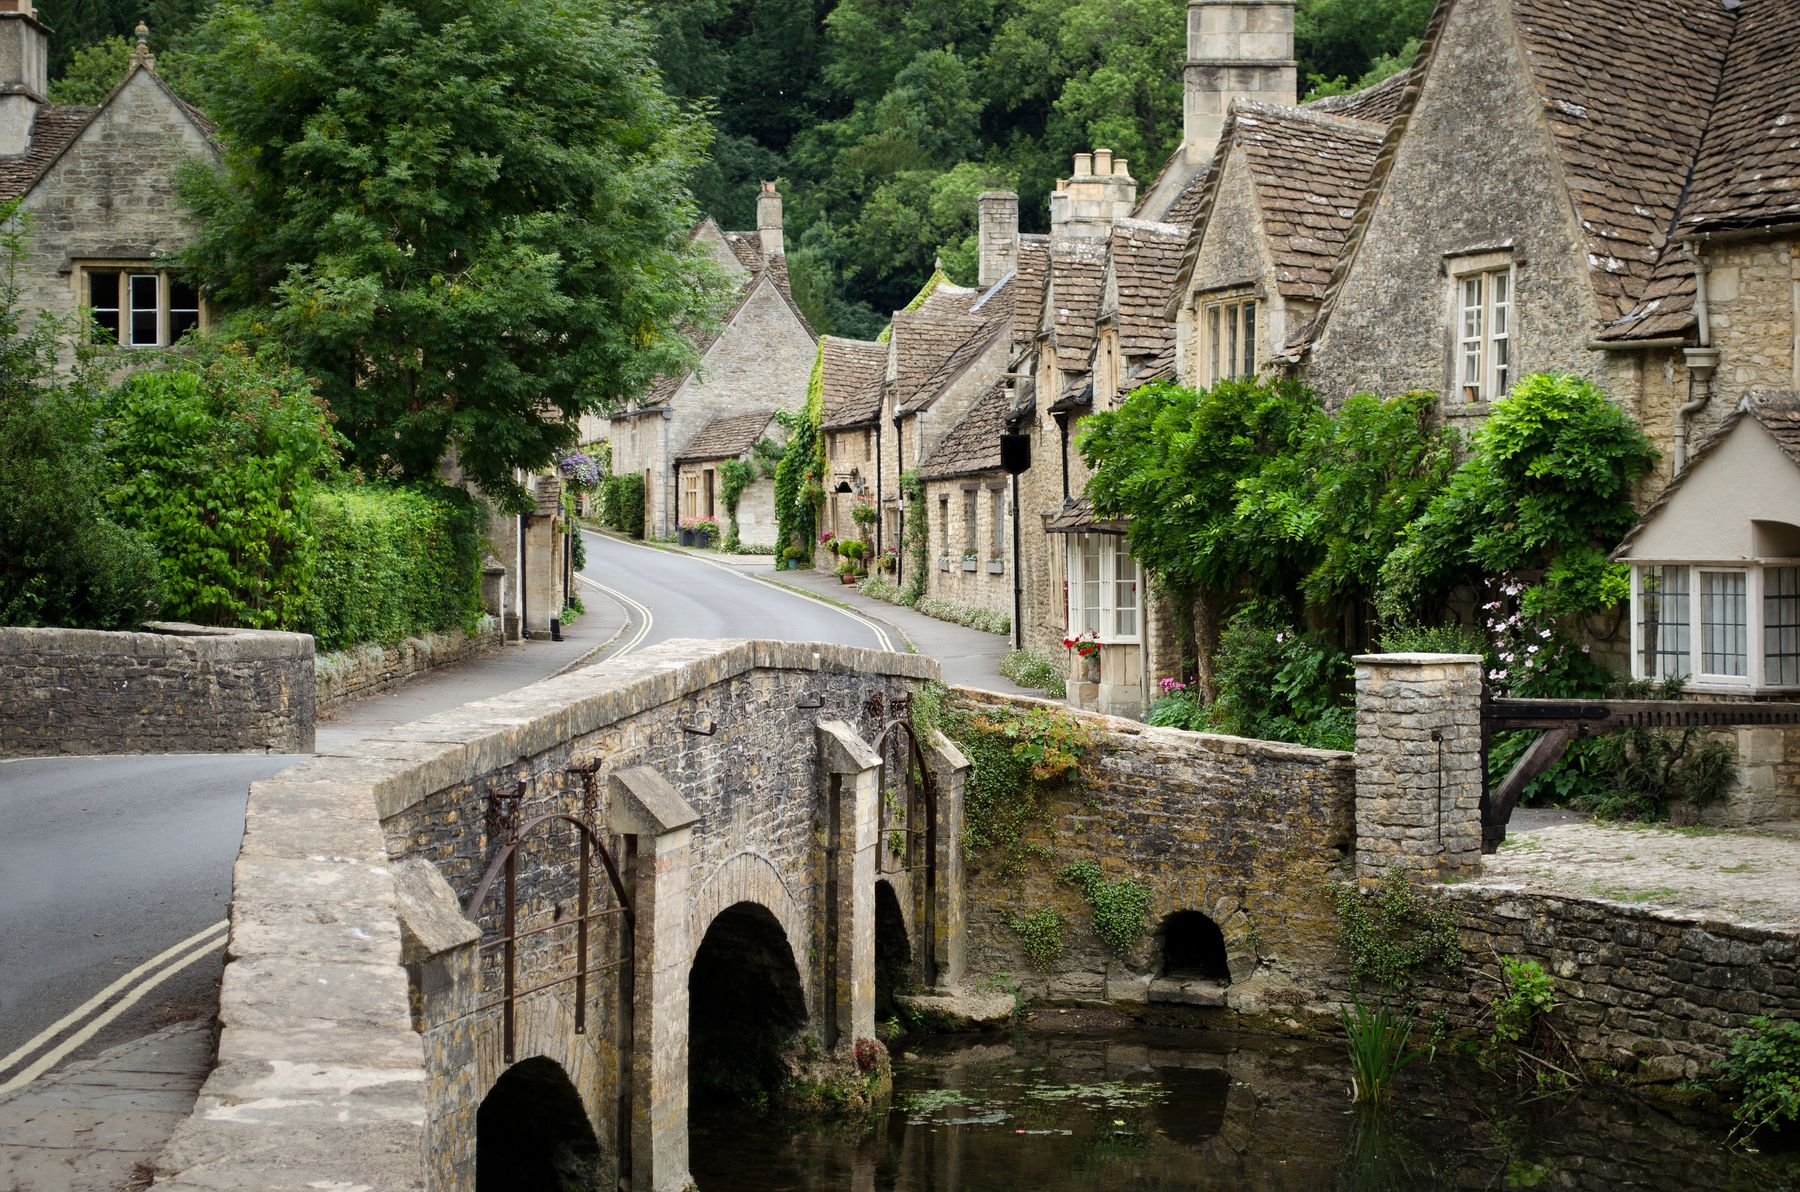 Pretty cottages line a street leading up to a stone bridge over a river in Castle Combe, a Cotswolds town perfect for spring holidays